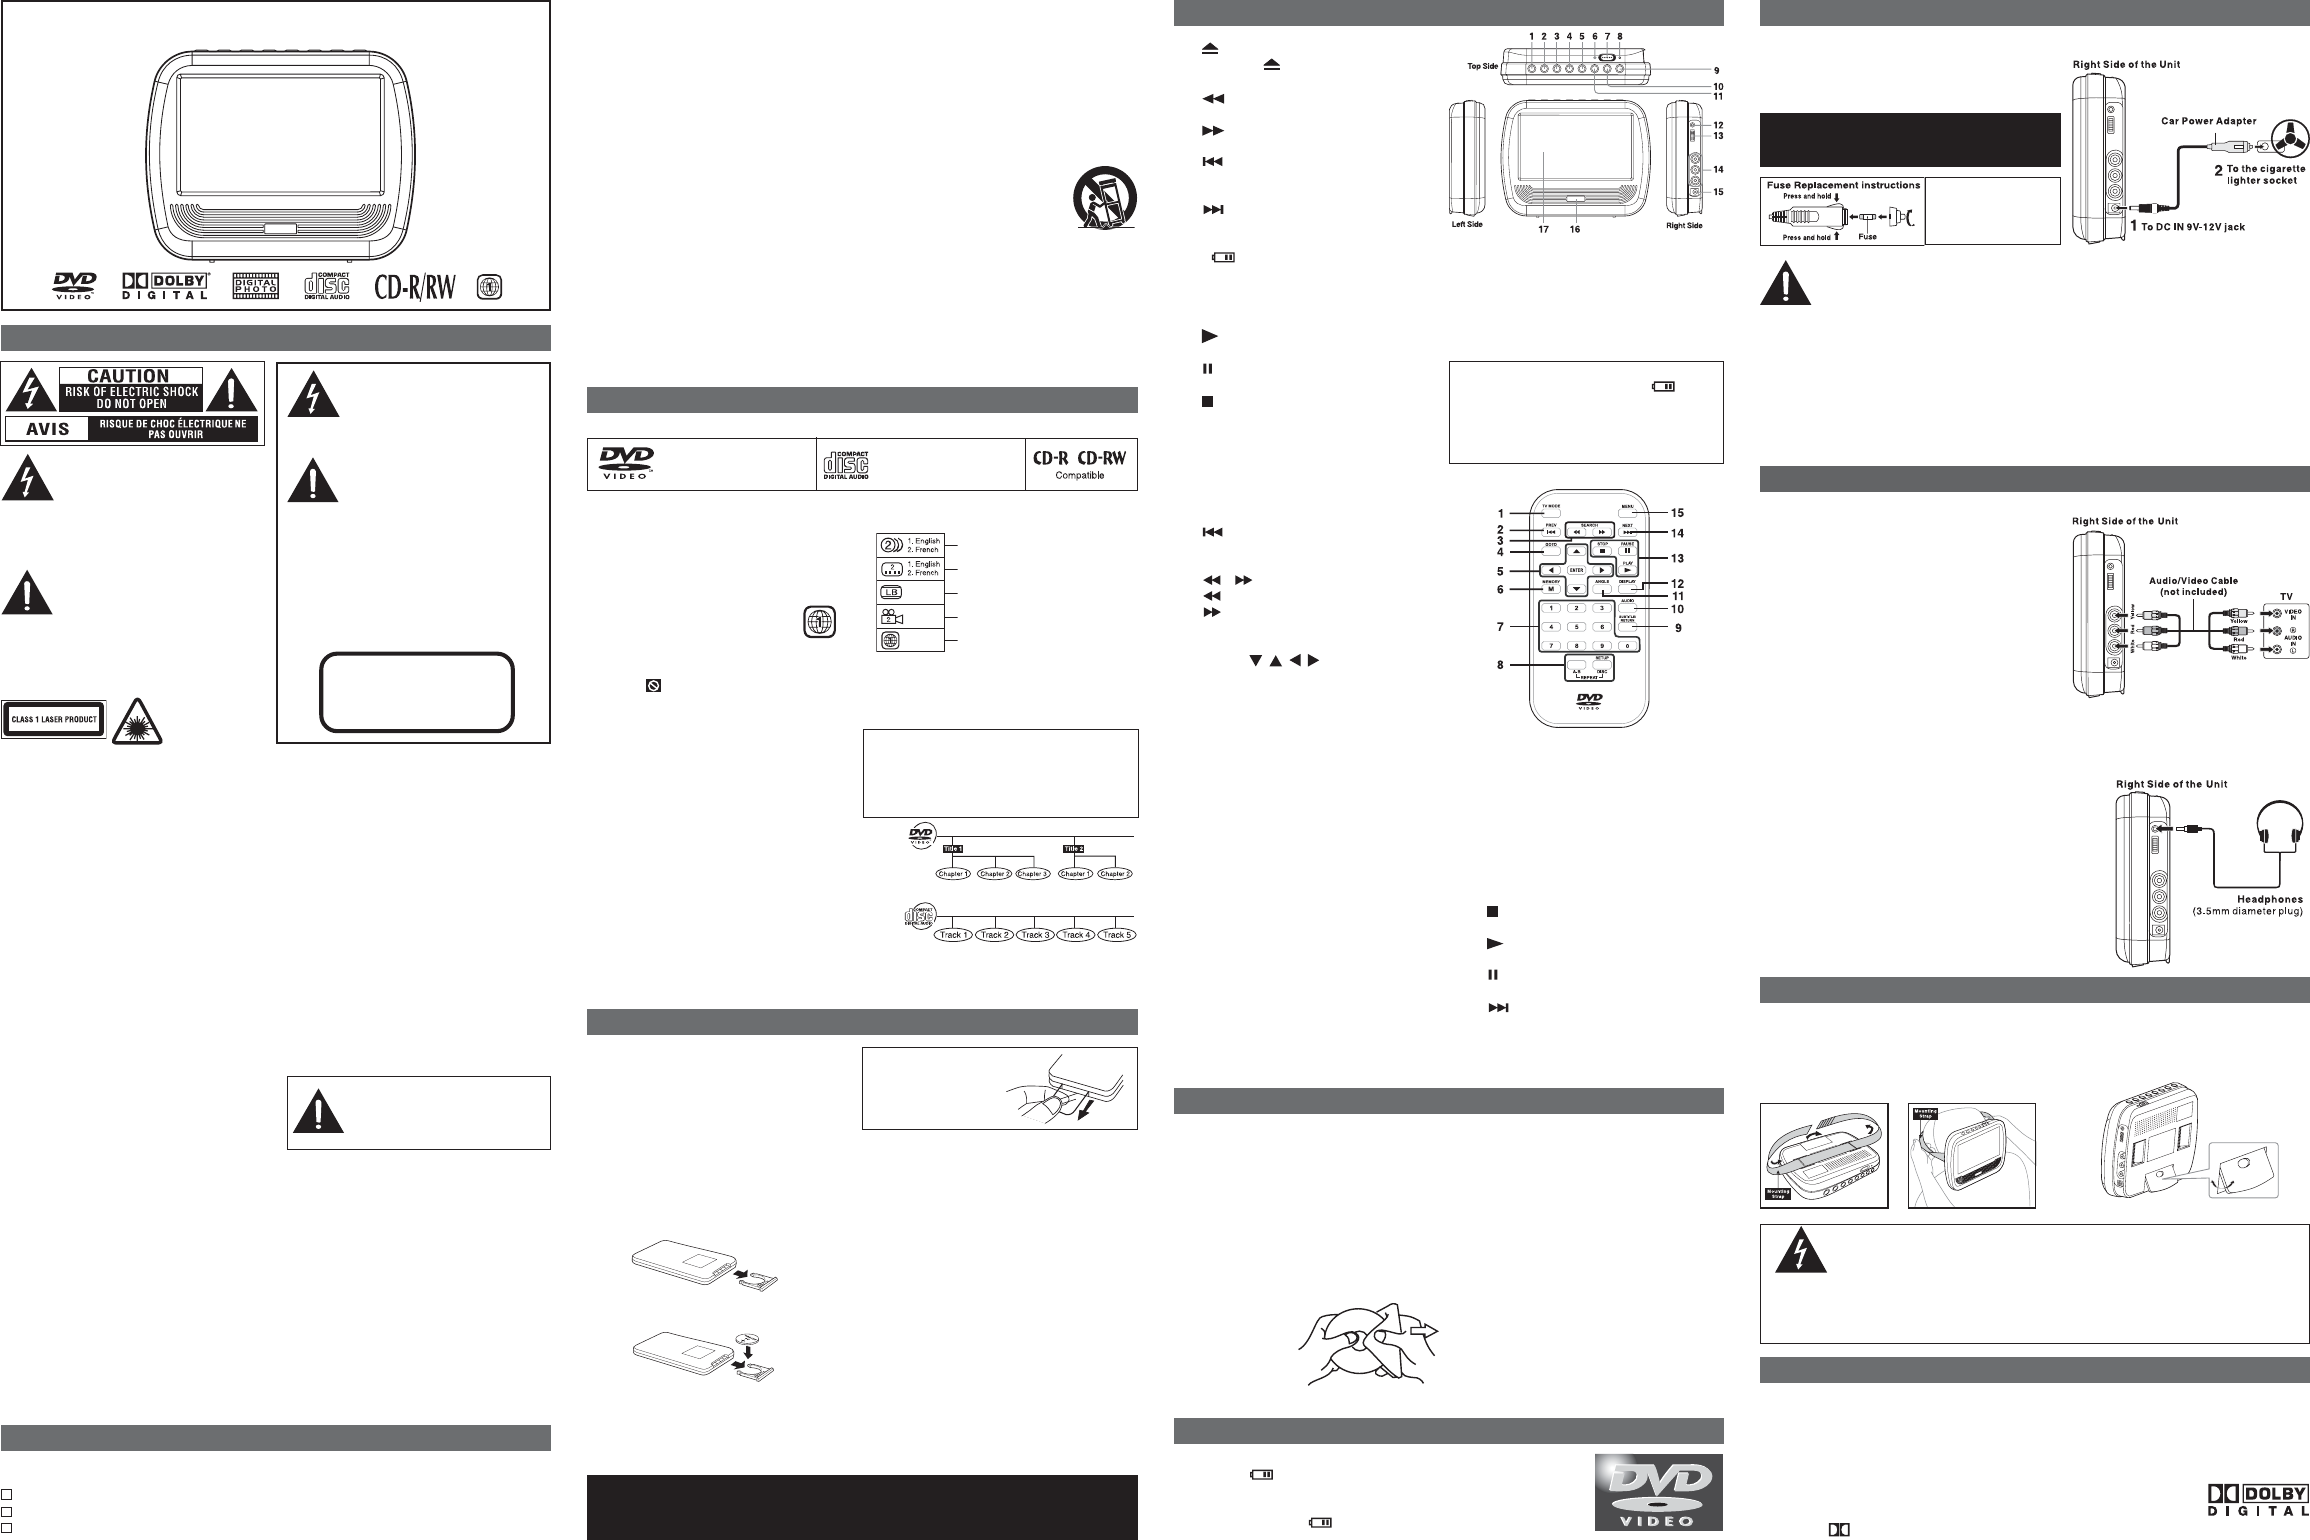 Wiring Diagram For Samsung Dlp Tv also Lg Wiring Diagram furthermore Electric Heater Schematic Symbol also 34 moreover Crt Tv Circuit Diagram. on samsung tv schematic diagrams